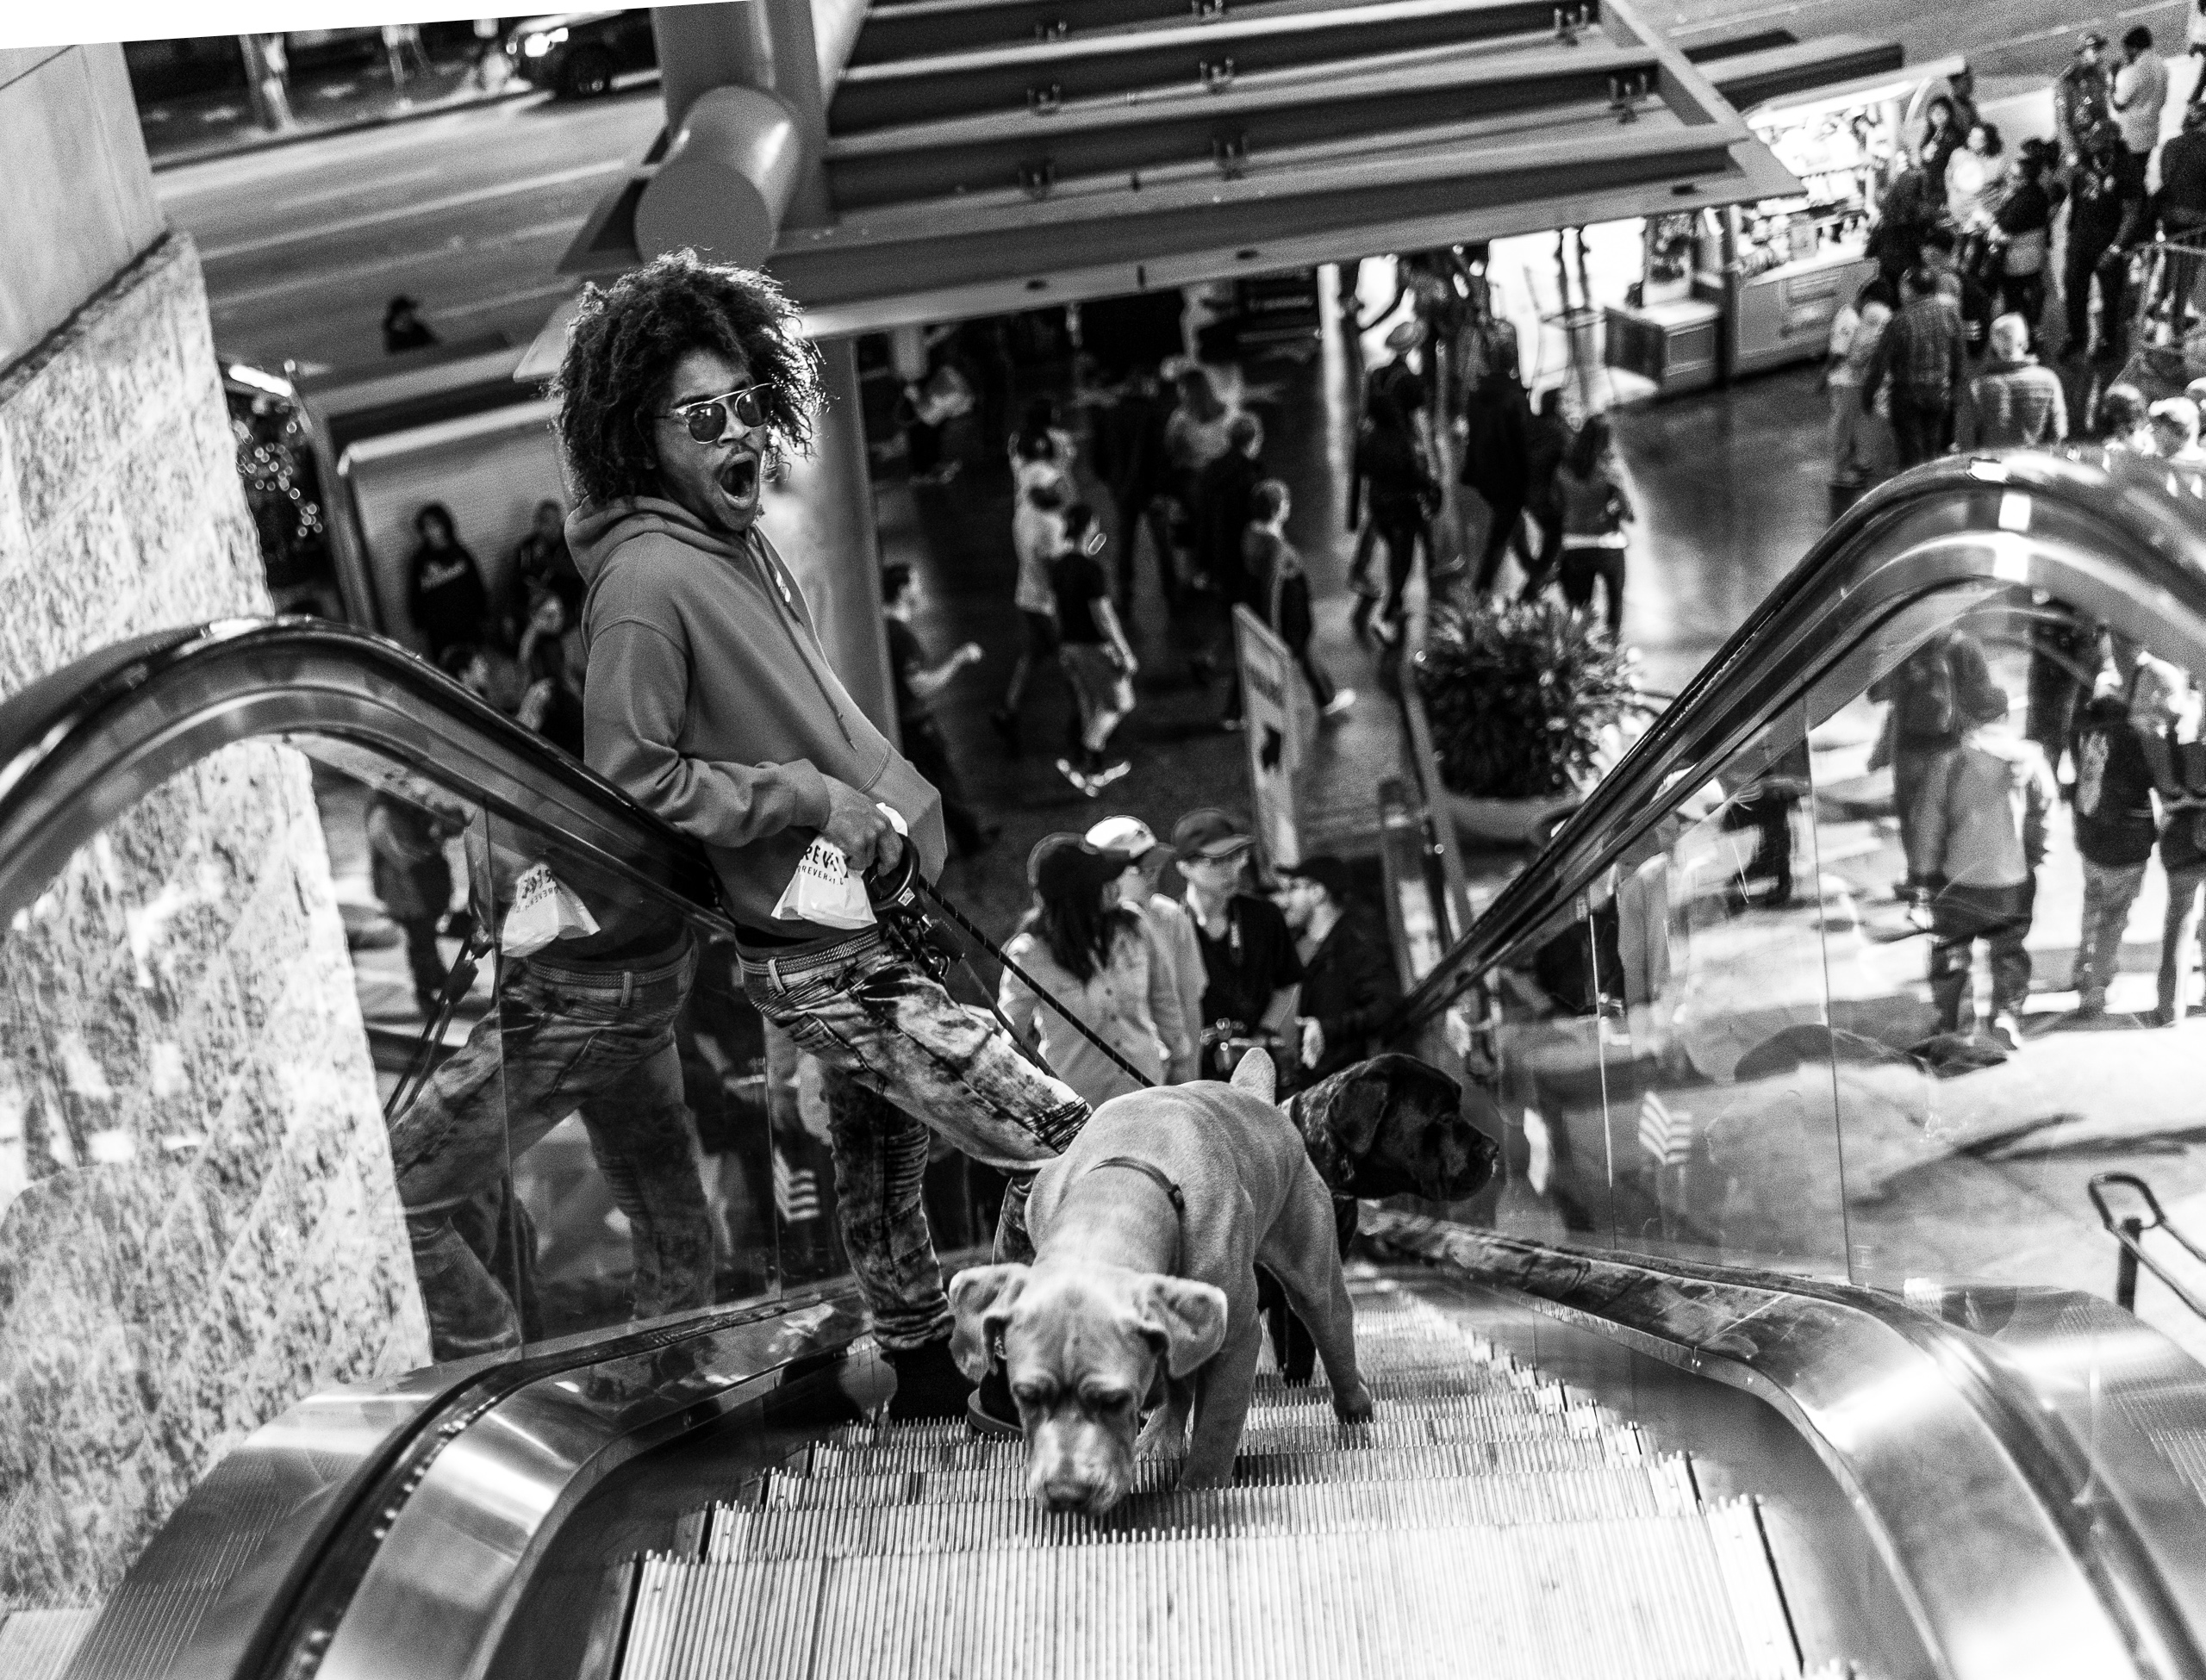 a guy with two dogs rides the escalator at the Hollywood & Highland center in Los Angeles, CA